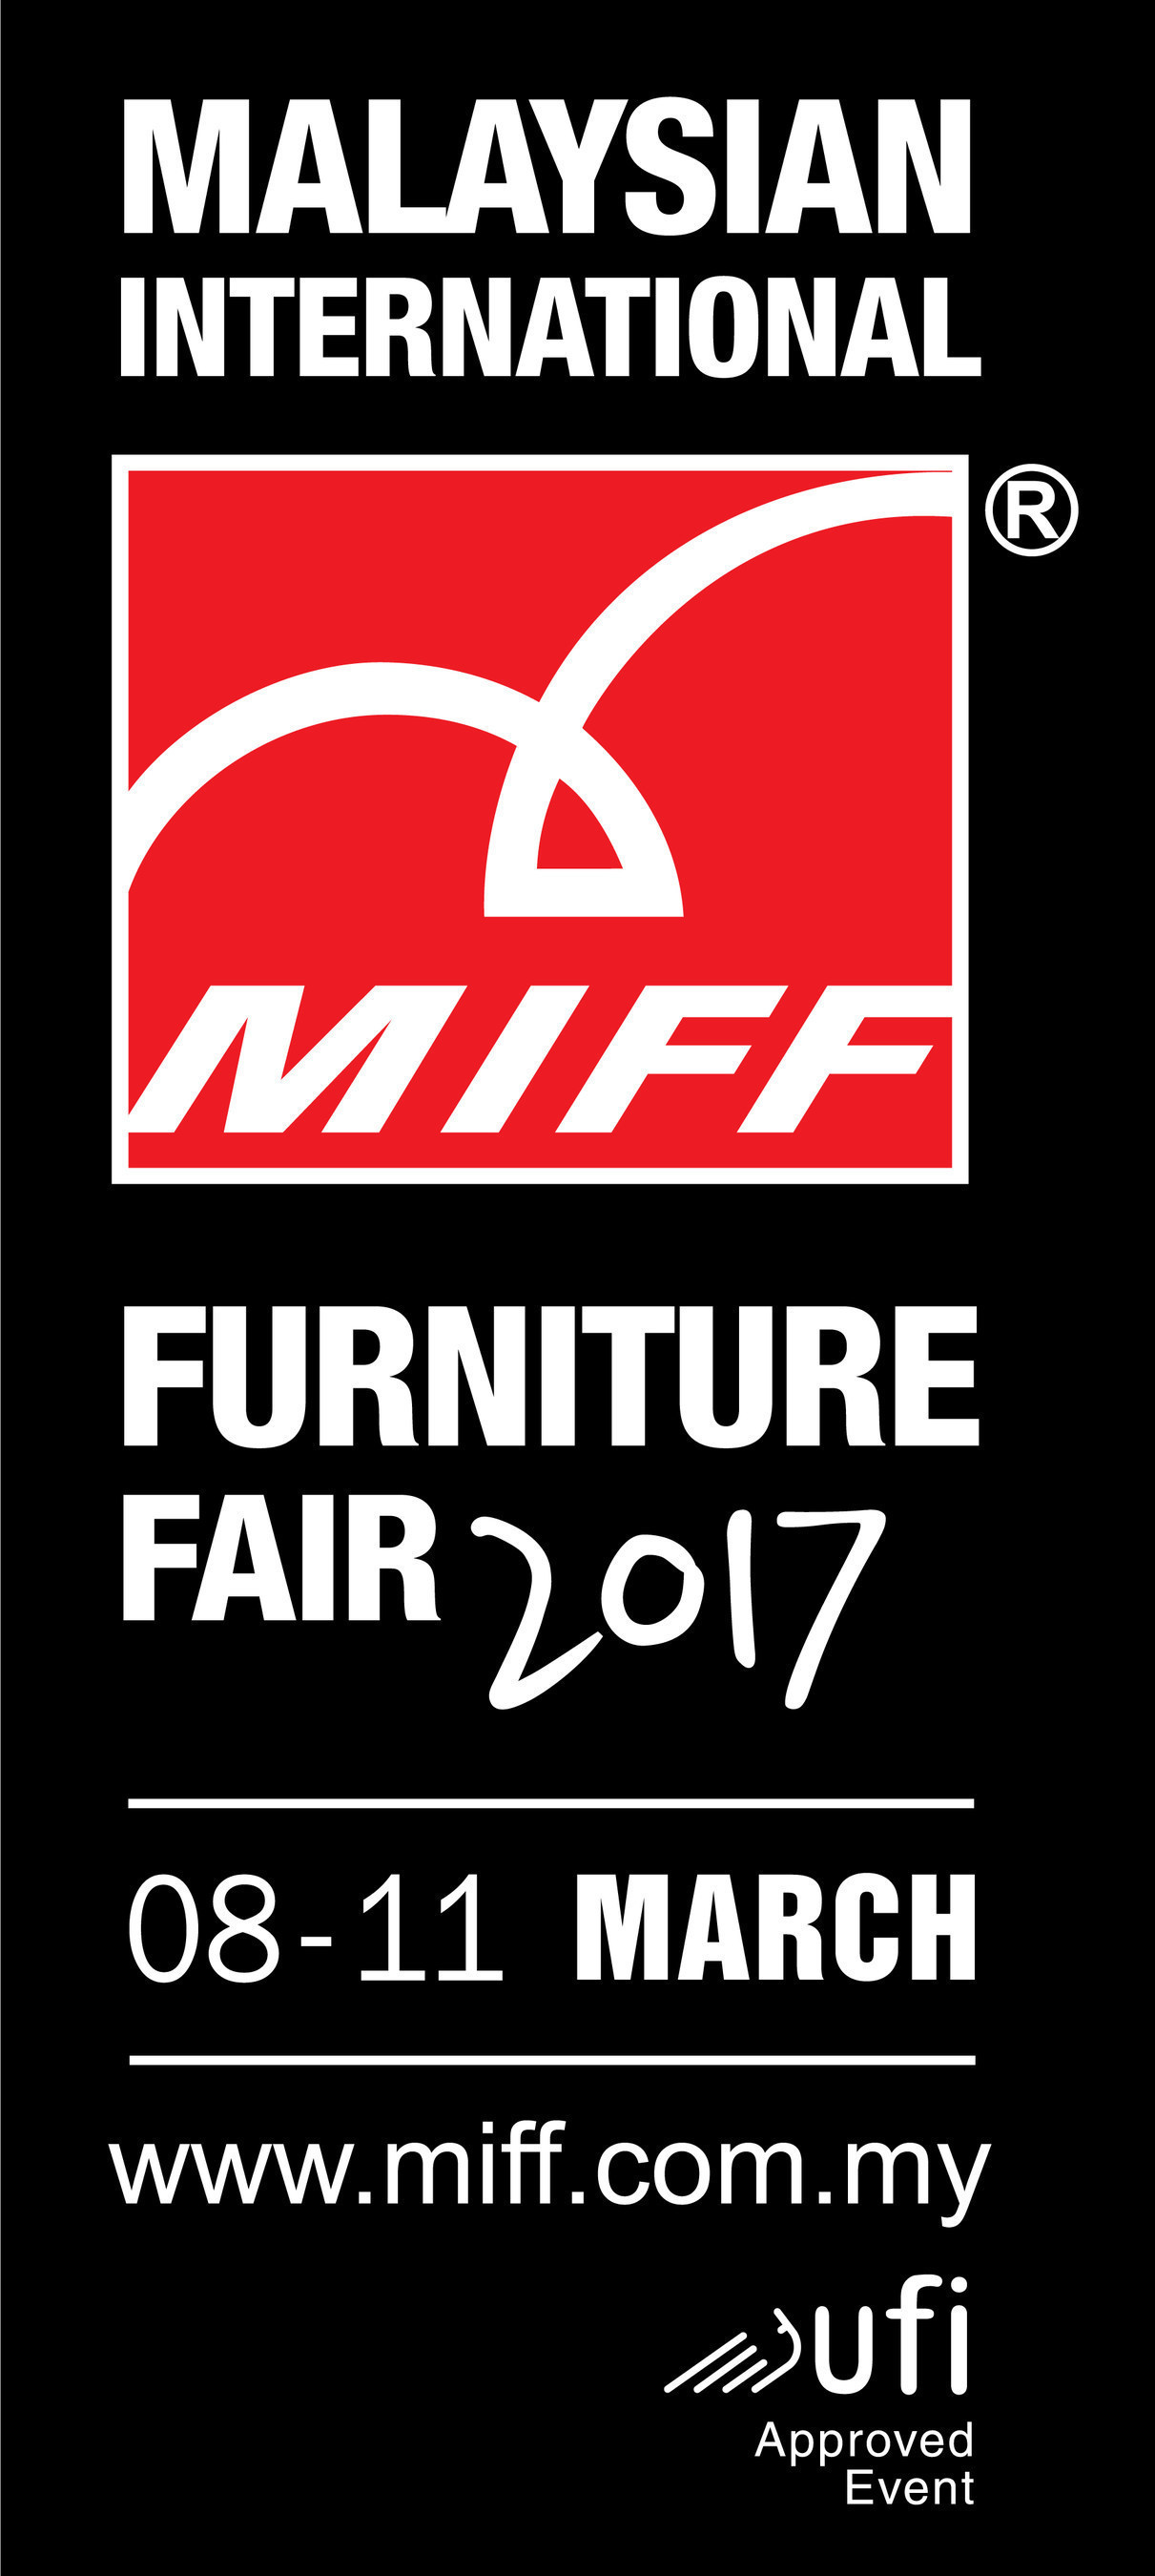 Miff Furniture Design Competition 2017 Opens for Entries